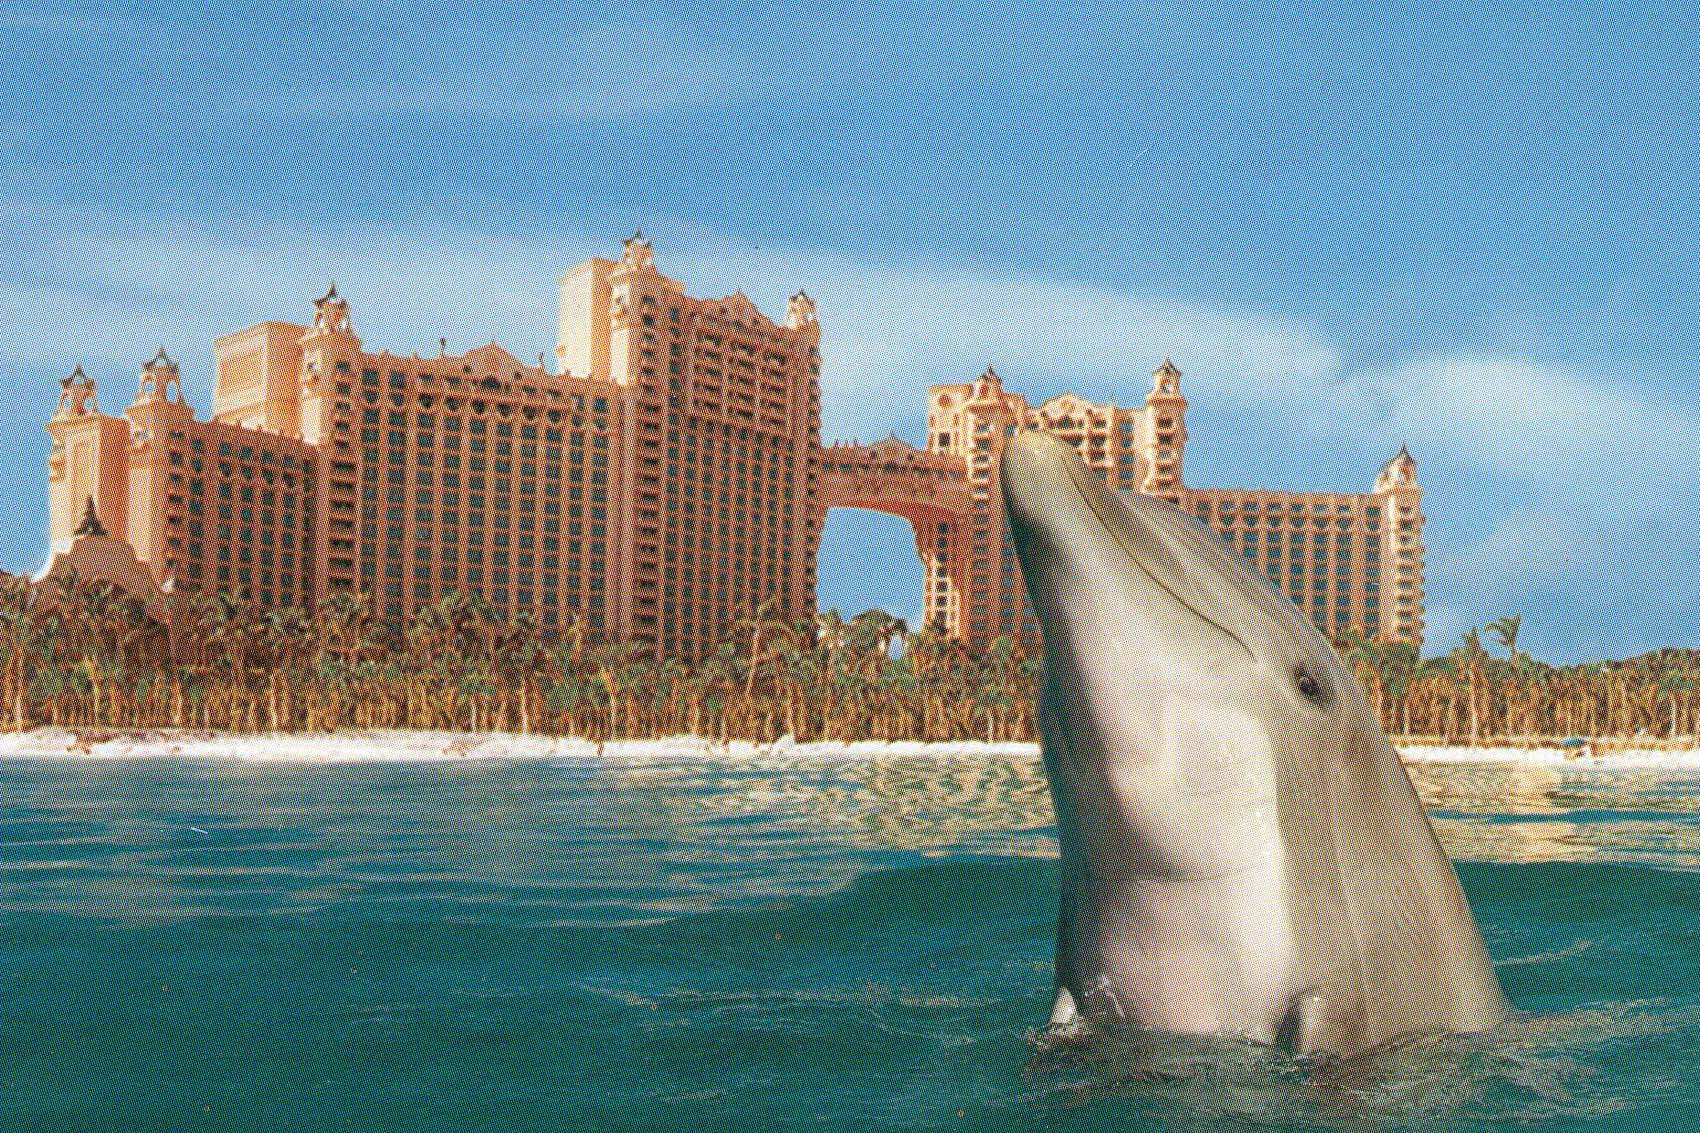 Dolphin Cay In The Premises Of Atlantis Hotel